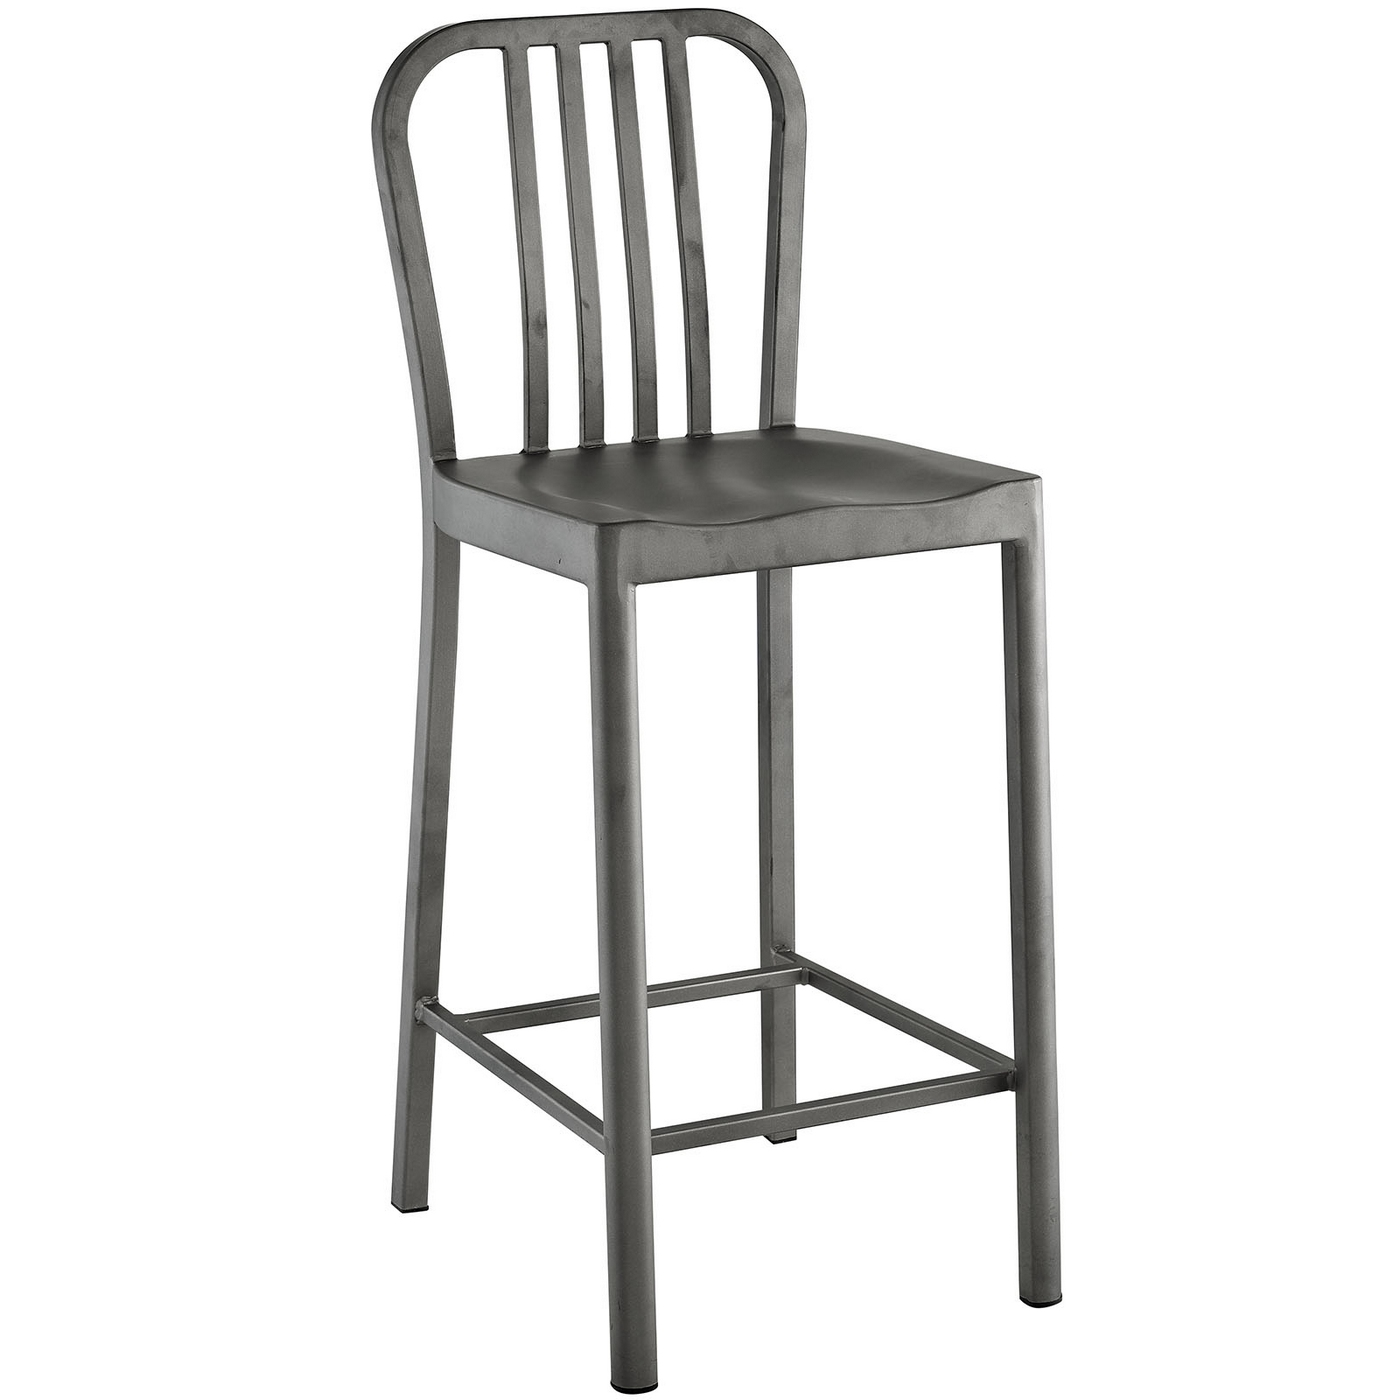 Clink Industrial Counter Height Stool With Brushed Steel  : clink industrial counter height stool with brushed steel finish silver 2 from shopfactorydirect.com size 1400 x 1400 jpeg 221kB